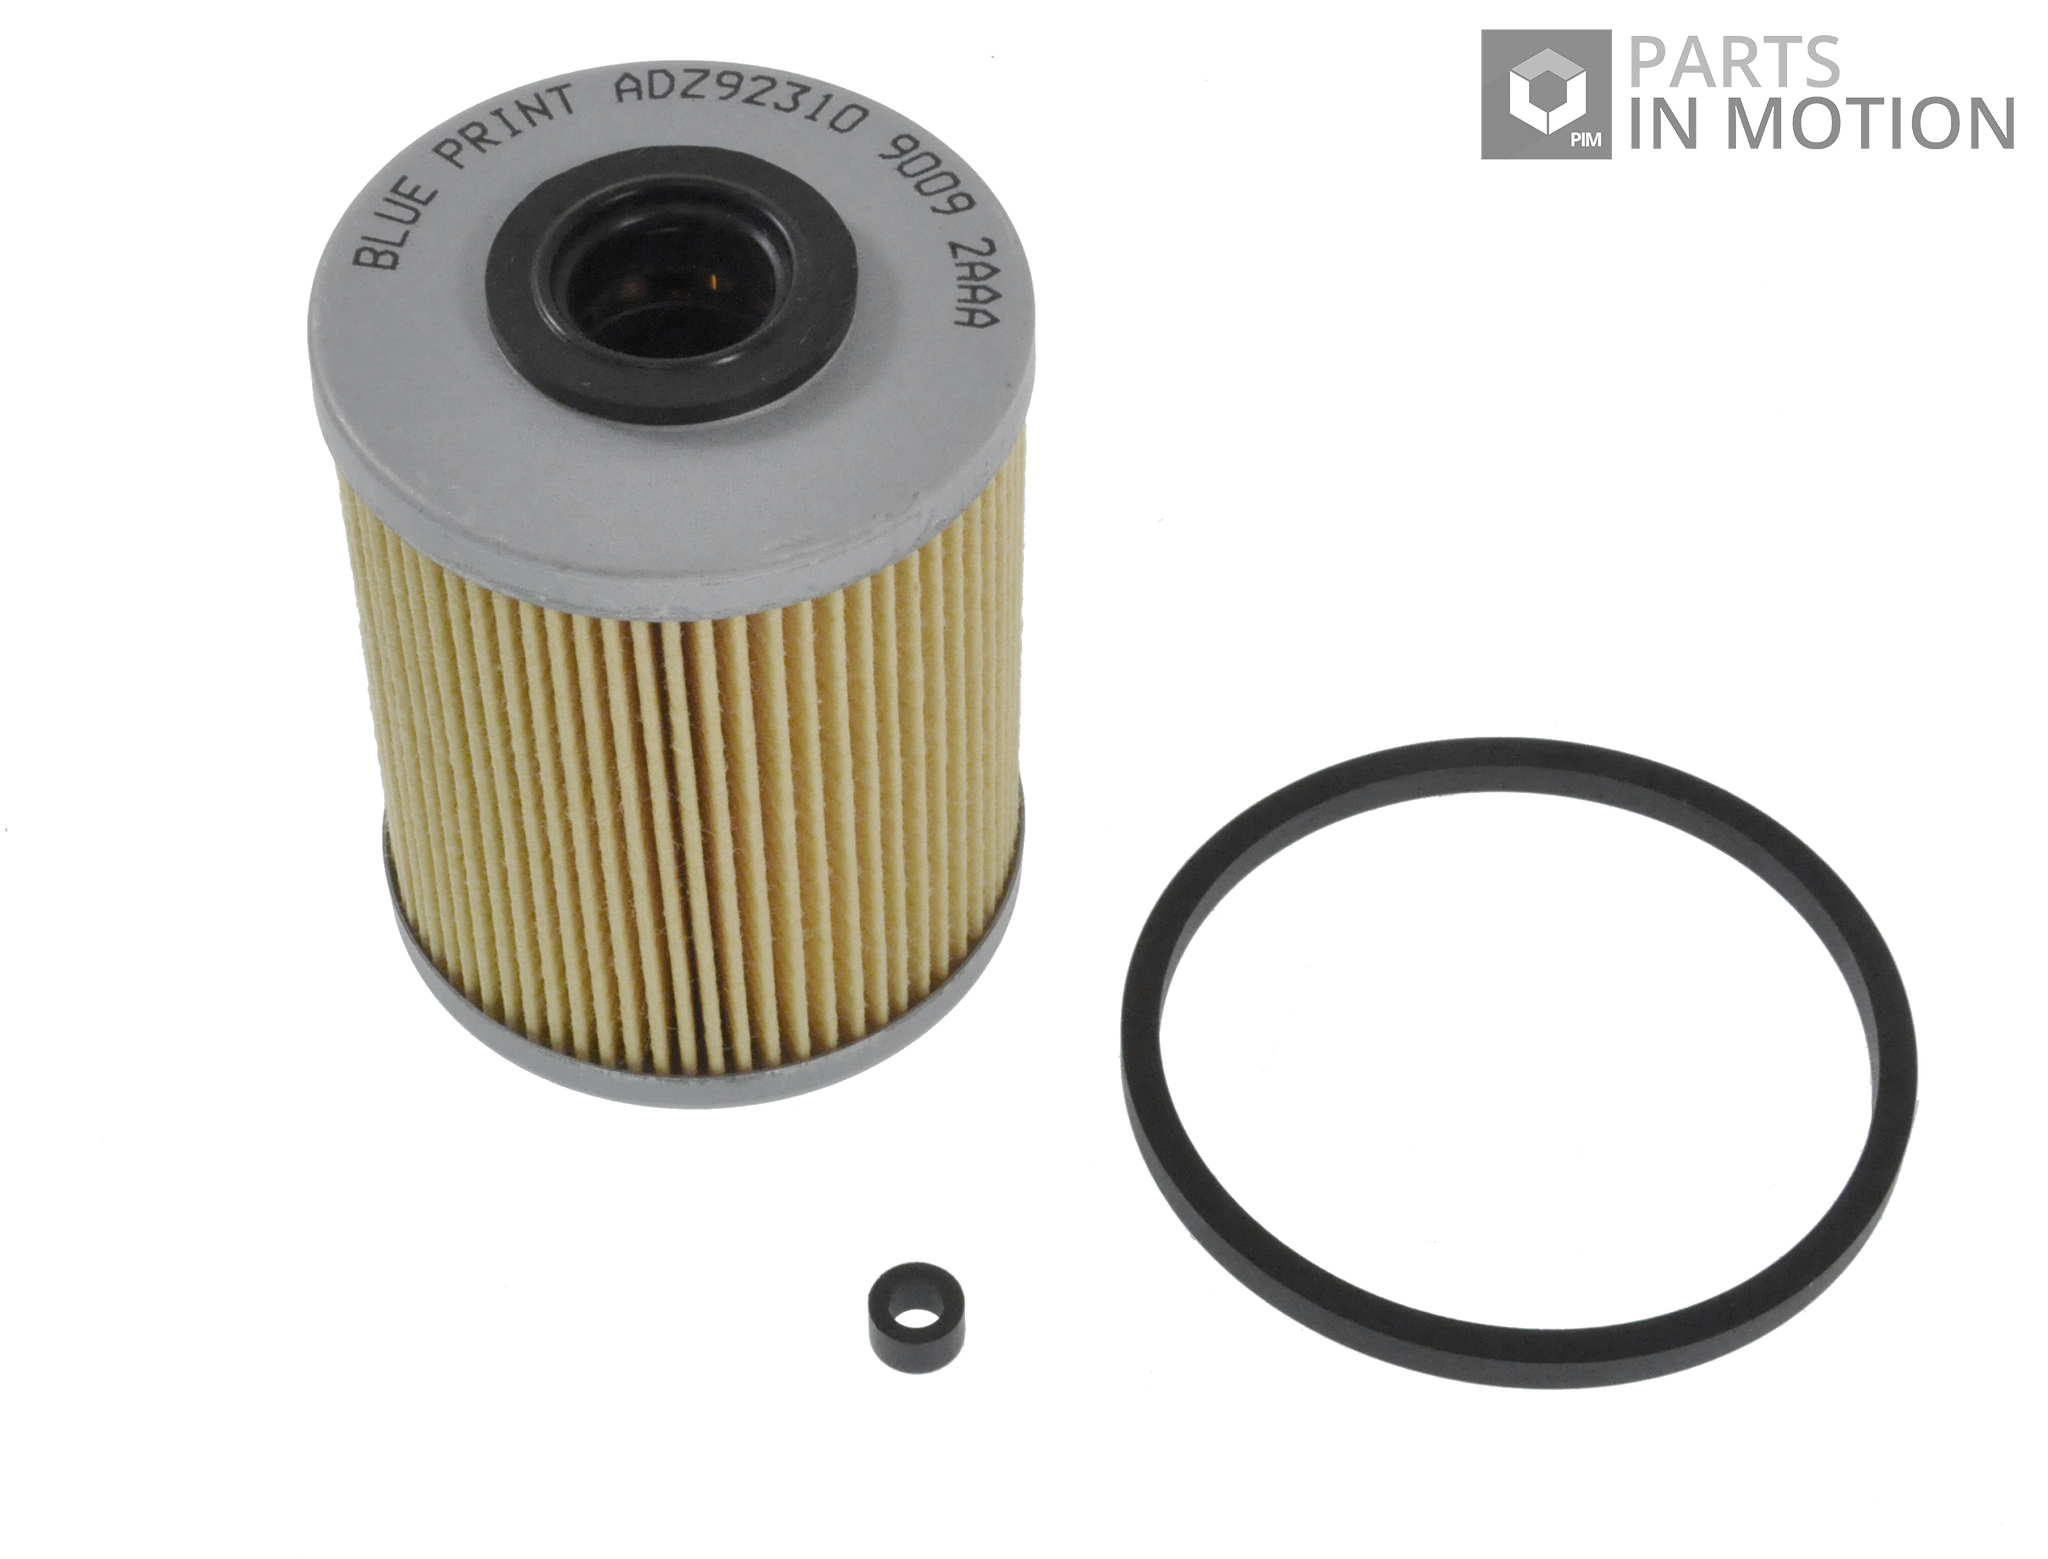 Vauxhall Corsa C 17d Fuel Filter 00 To 06 Adl 818 531 00818 Engine Filters Blue Print Adz92310